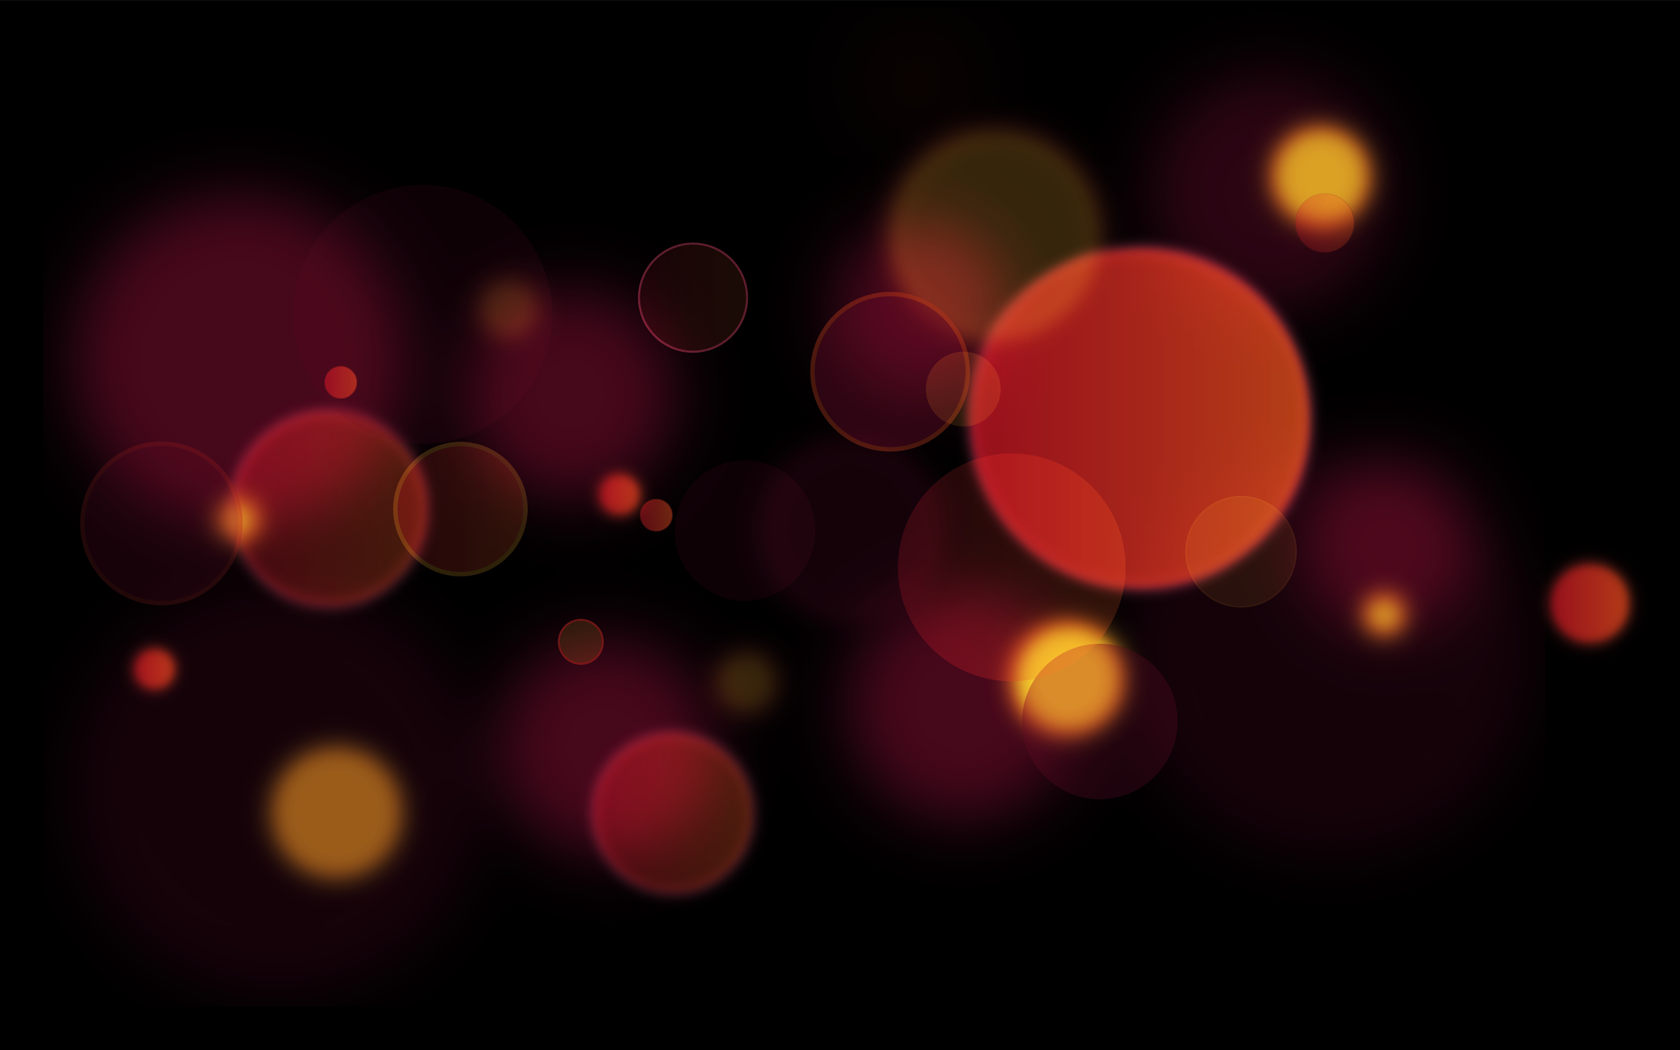 Gradient Background Png Background-1680-1050.png